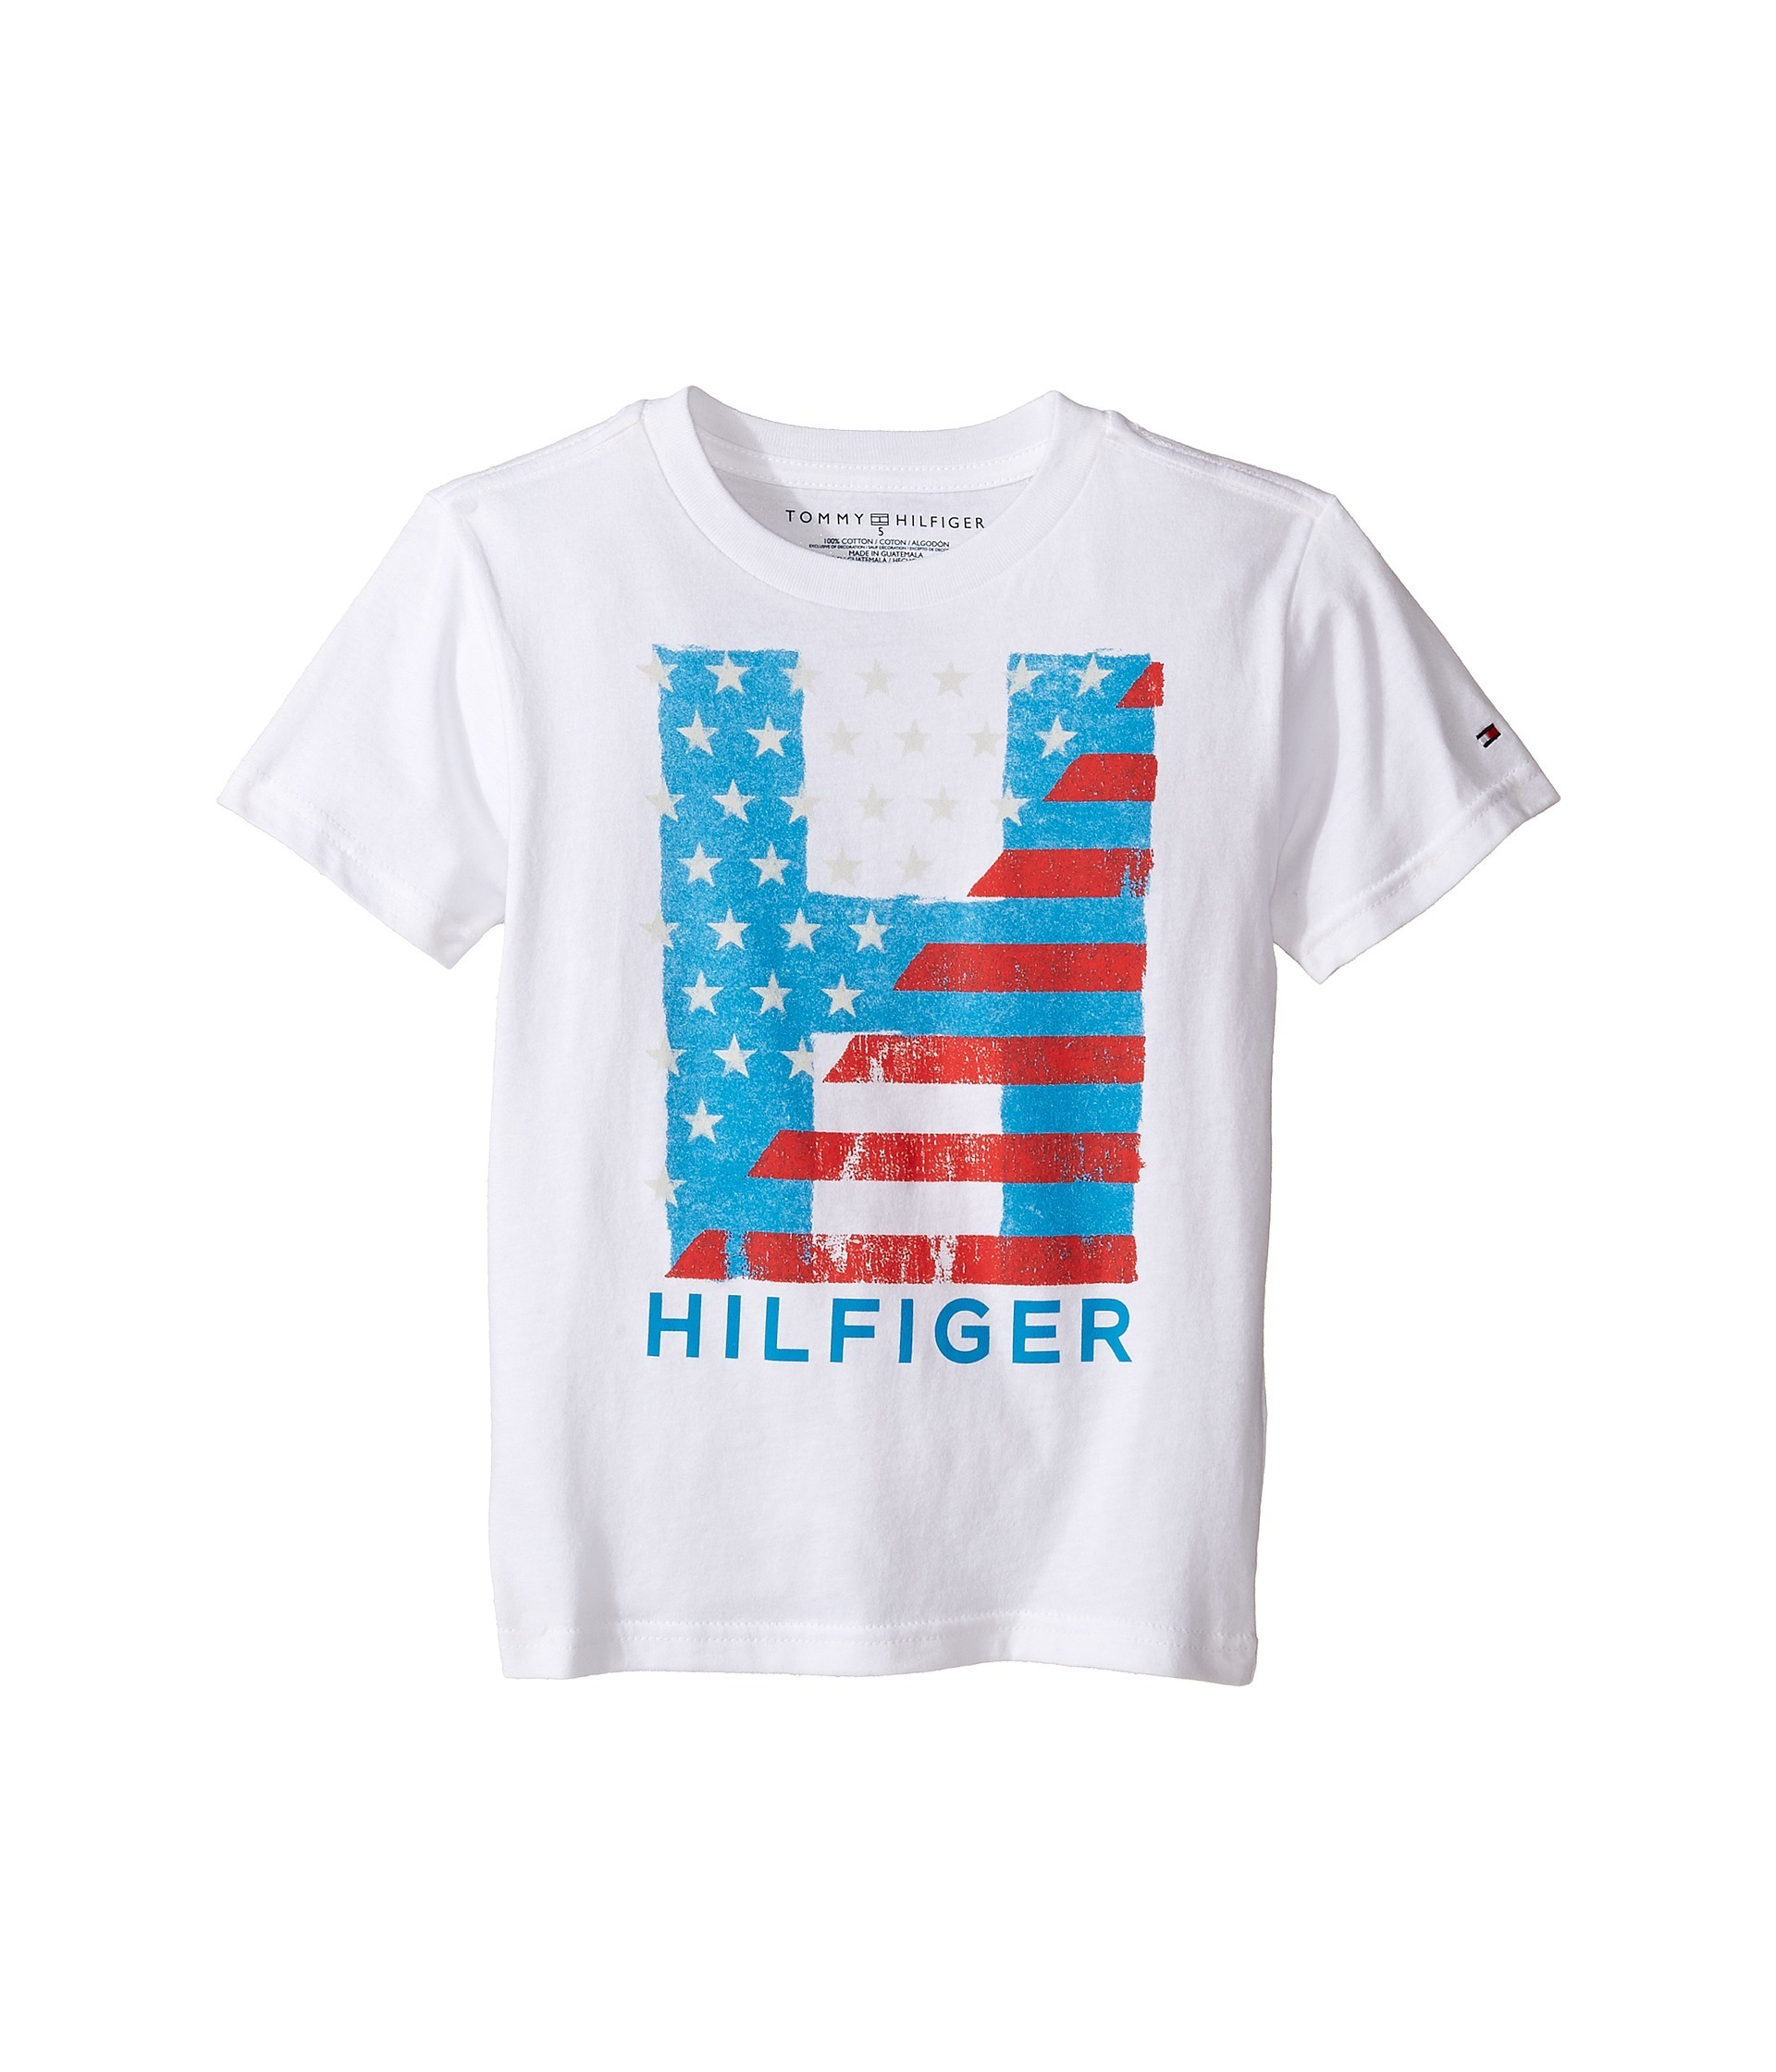 大人気★Tommy Hilfiger Kids Homeroom Tee (Toddl 送料・関税込